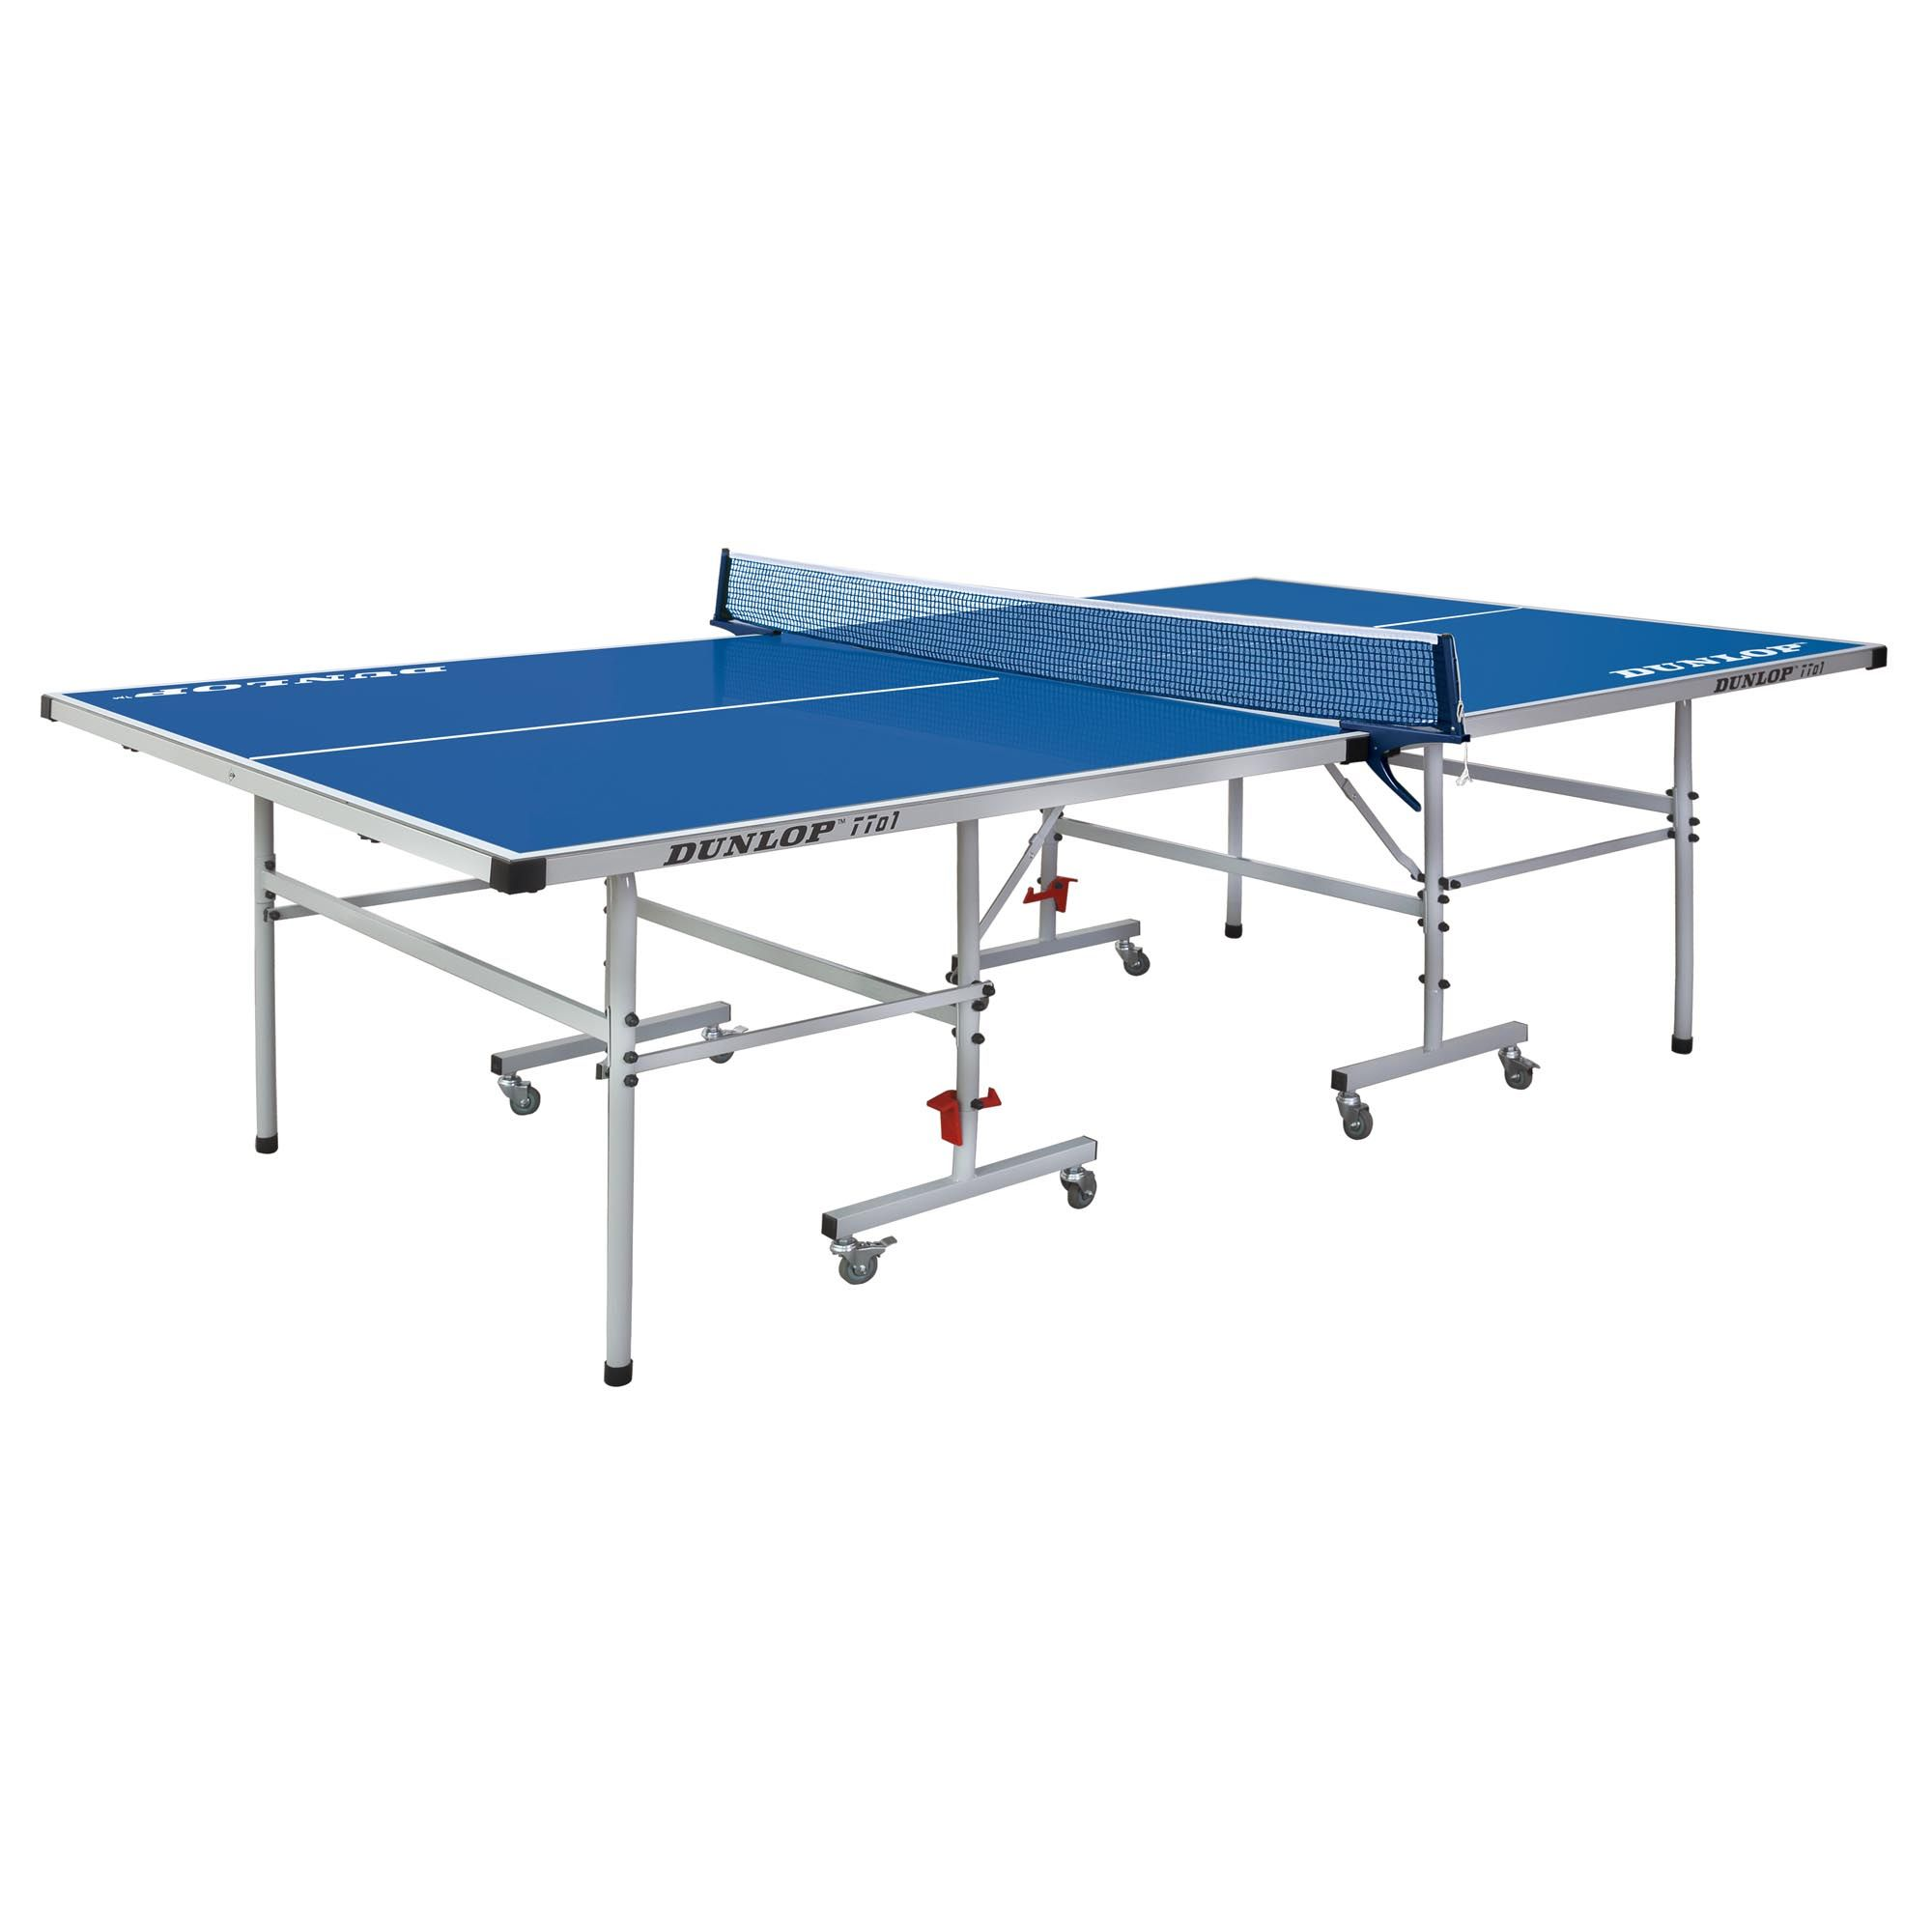 Dunlop tto1 outdoor table tennis table - Weatherproof table tennis table ...